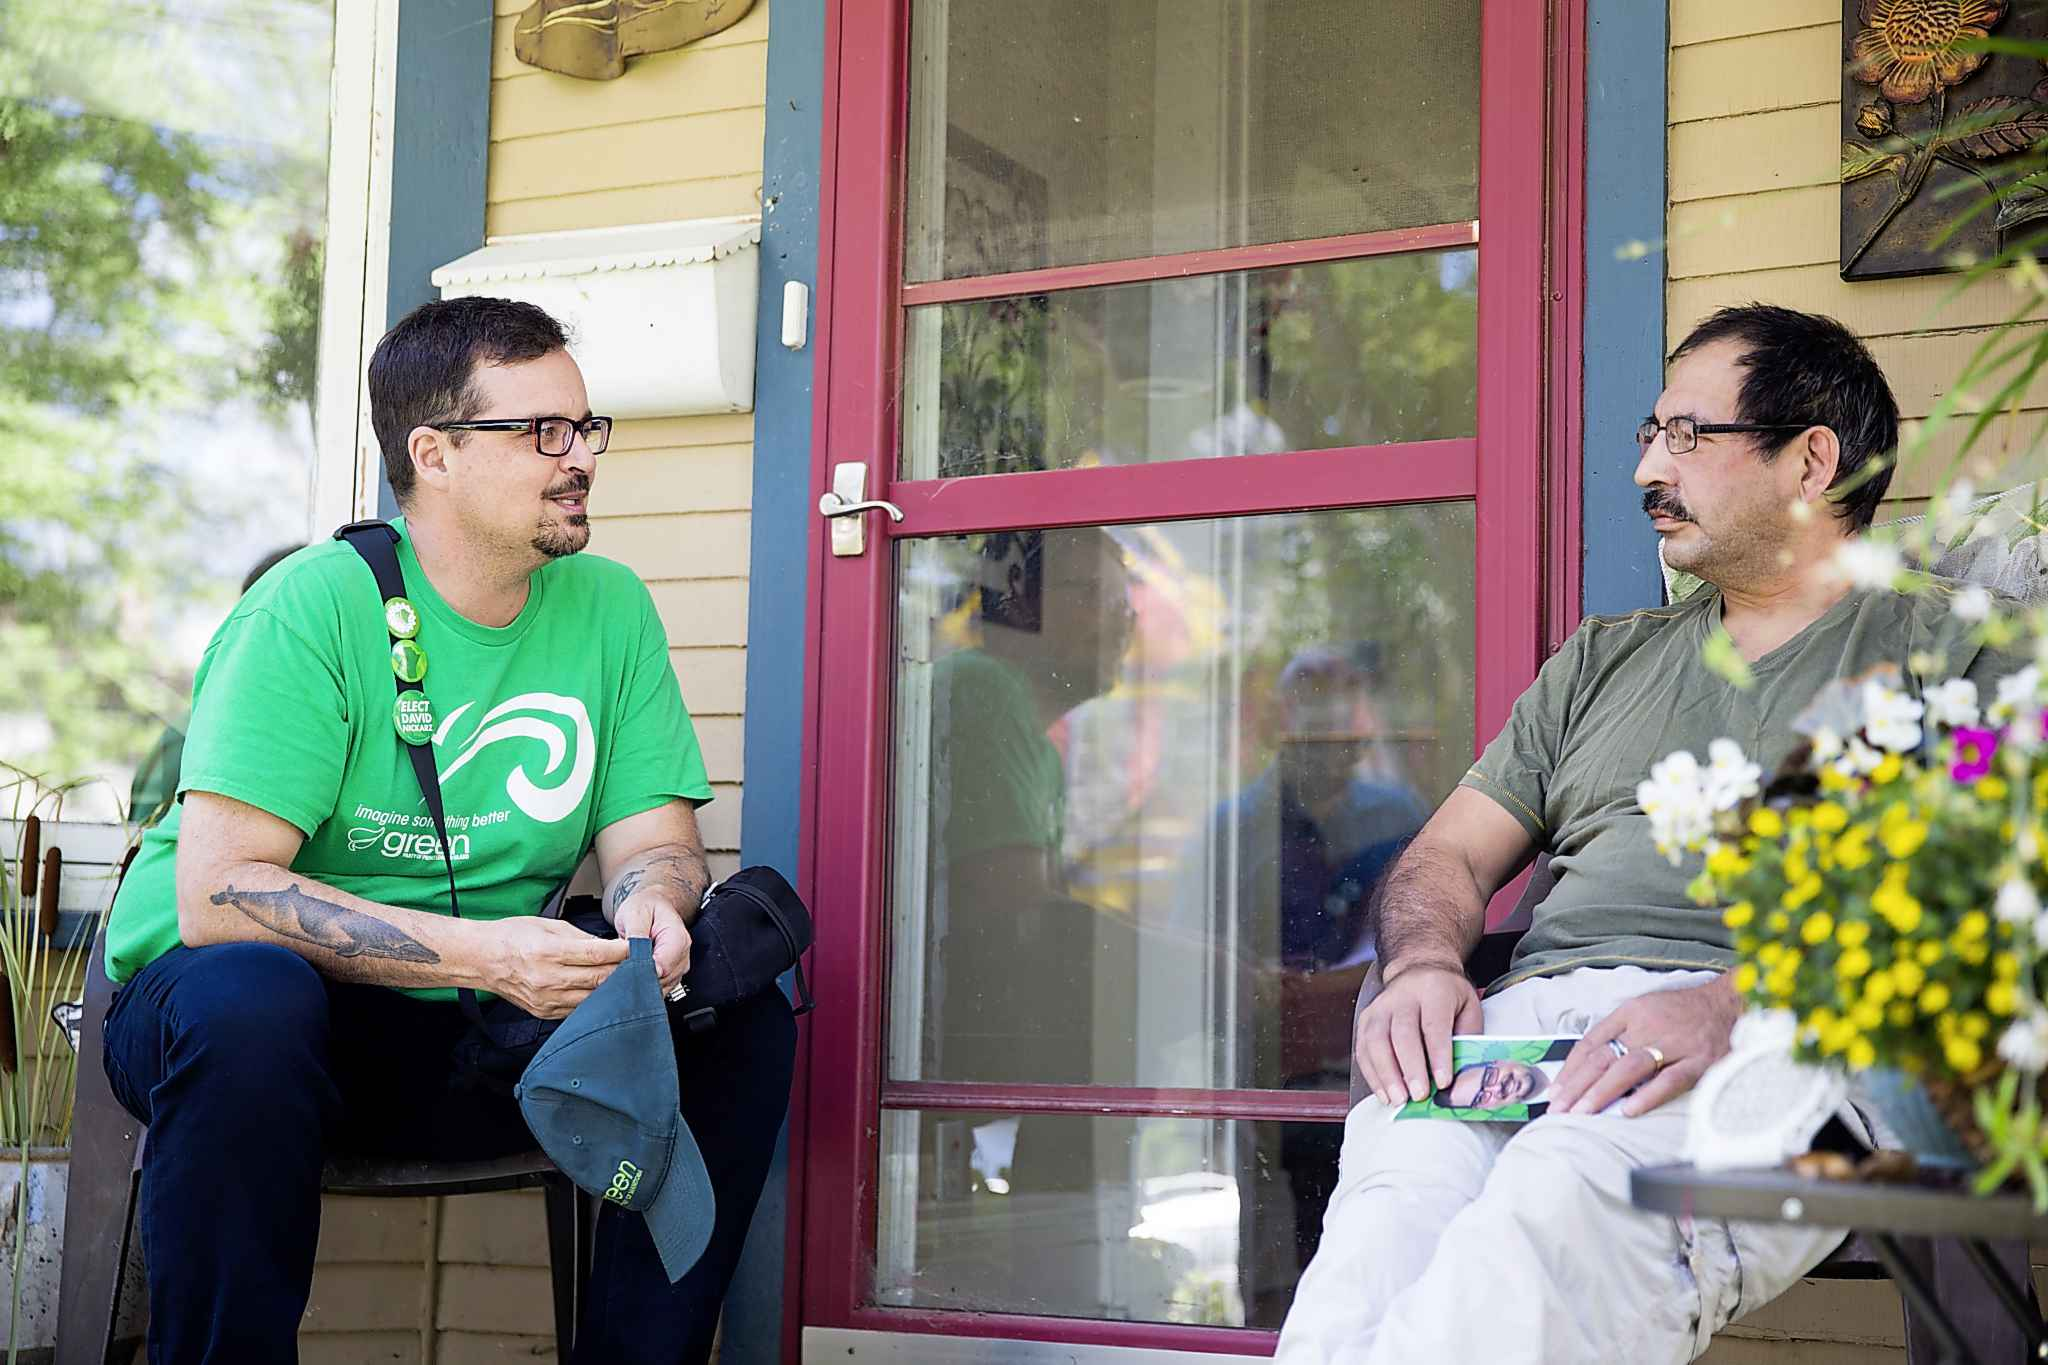 Green candidate Nickarz speaks with Wolseley resident Kenneth Wavey.